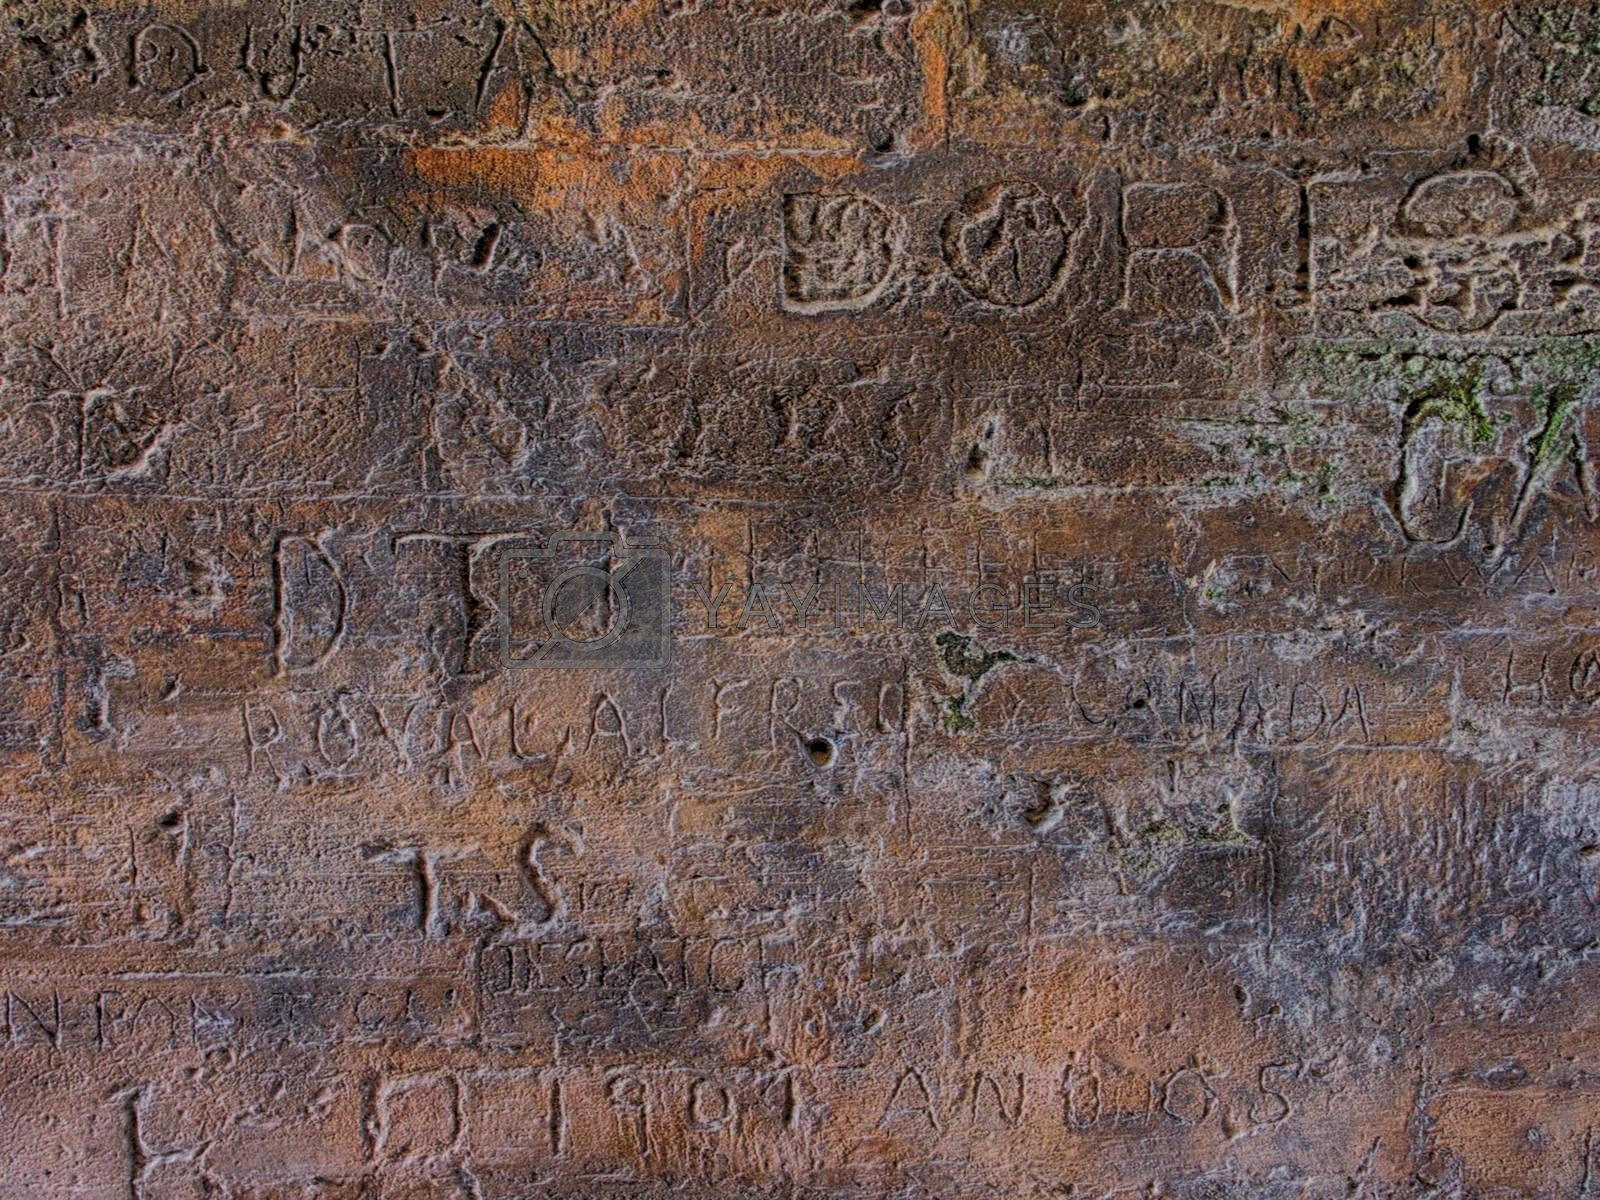 Engraved writings on stone wall